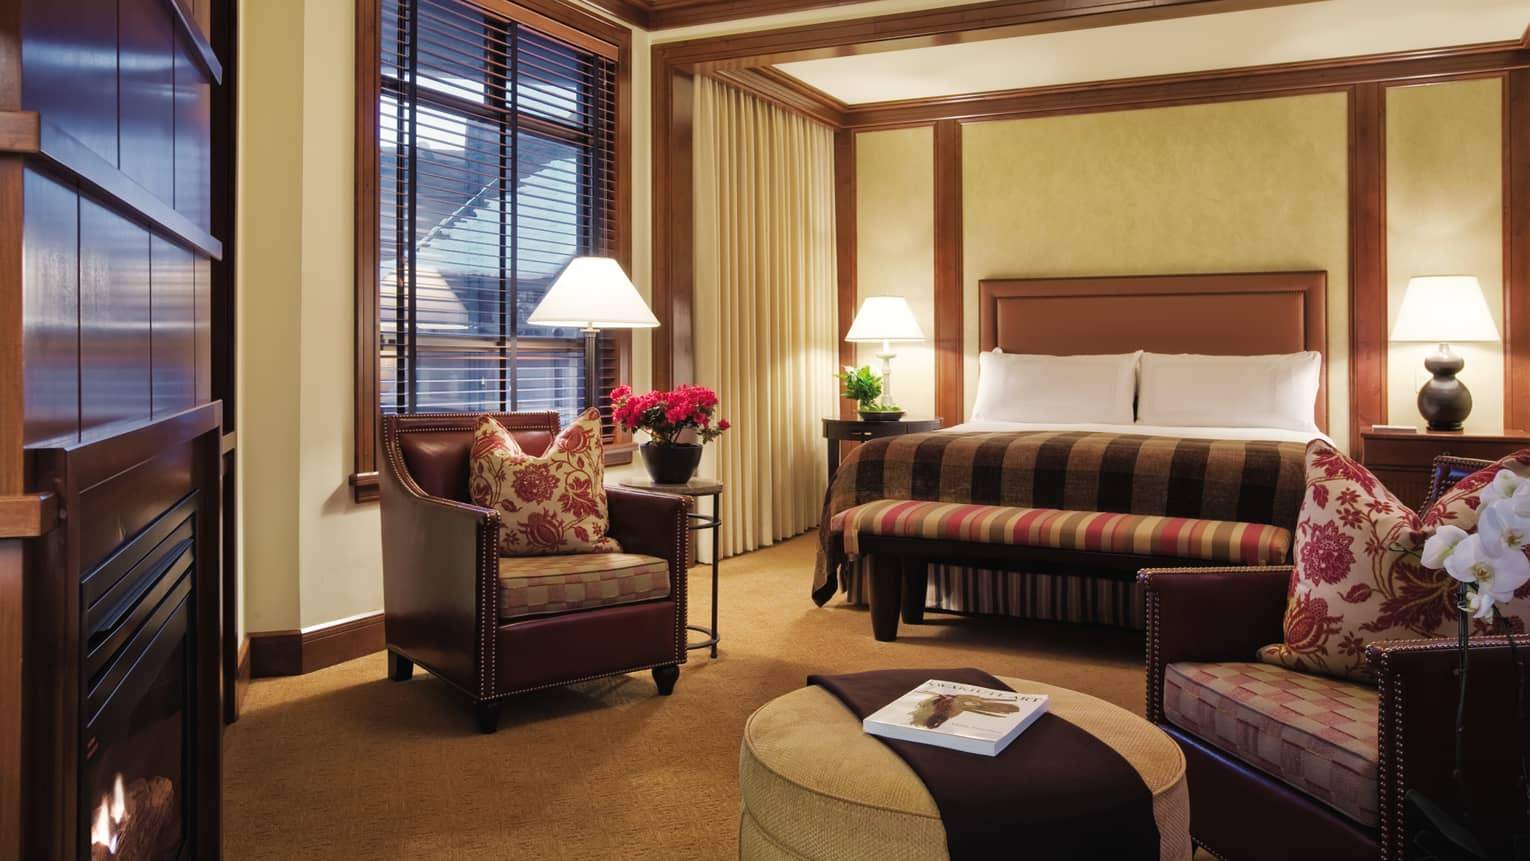 Two-Bedroom Interconnecting Deluxe Suite dimly-lit room with wood accents, bed and chair